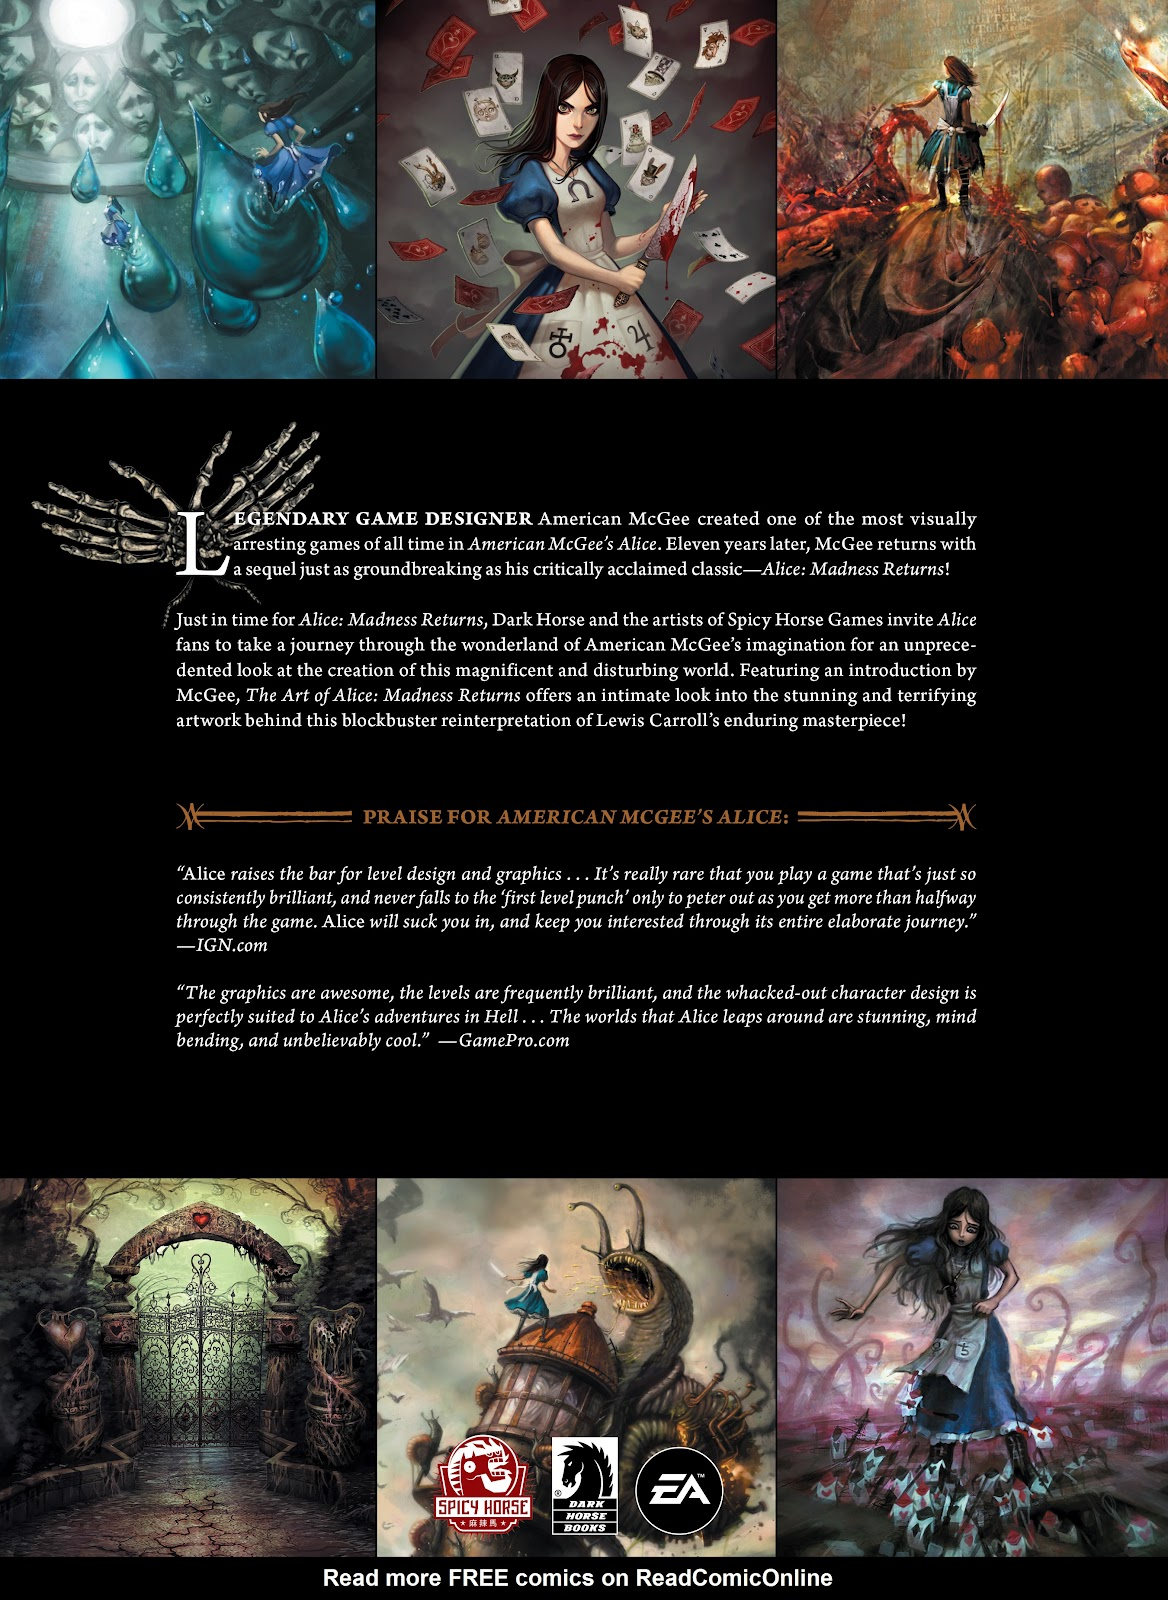 Read online The Art of Alice: Madness Returns comic -  Issue # TPB (Part 2) - 76